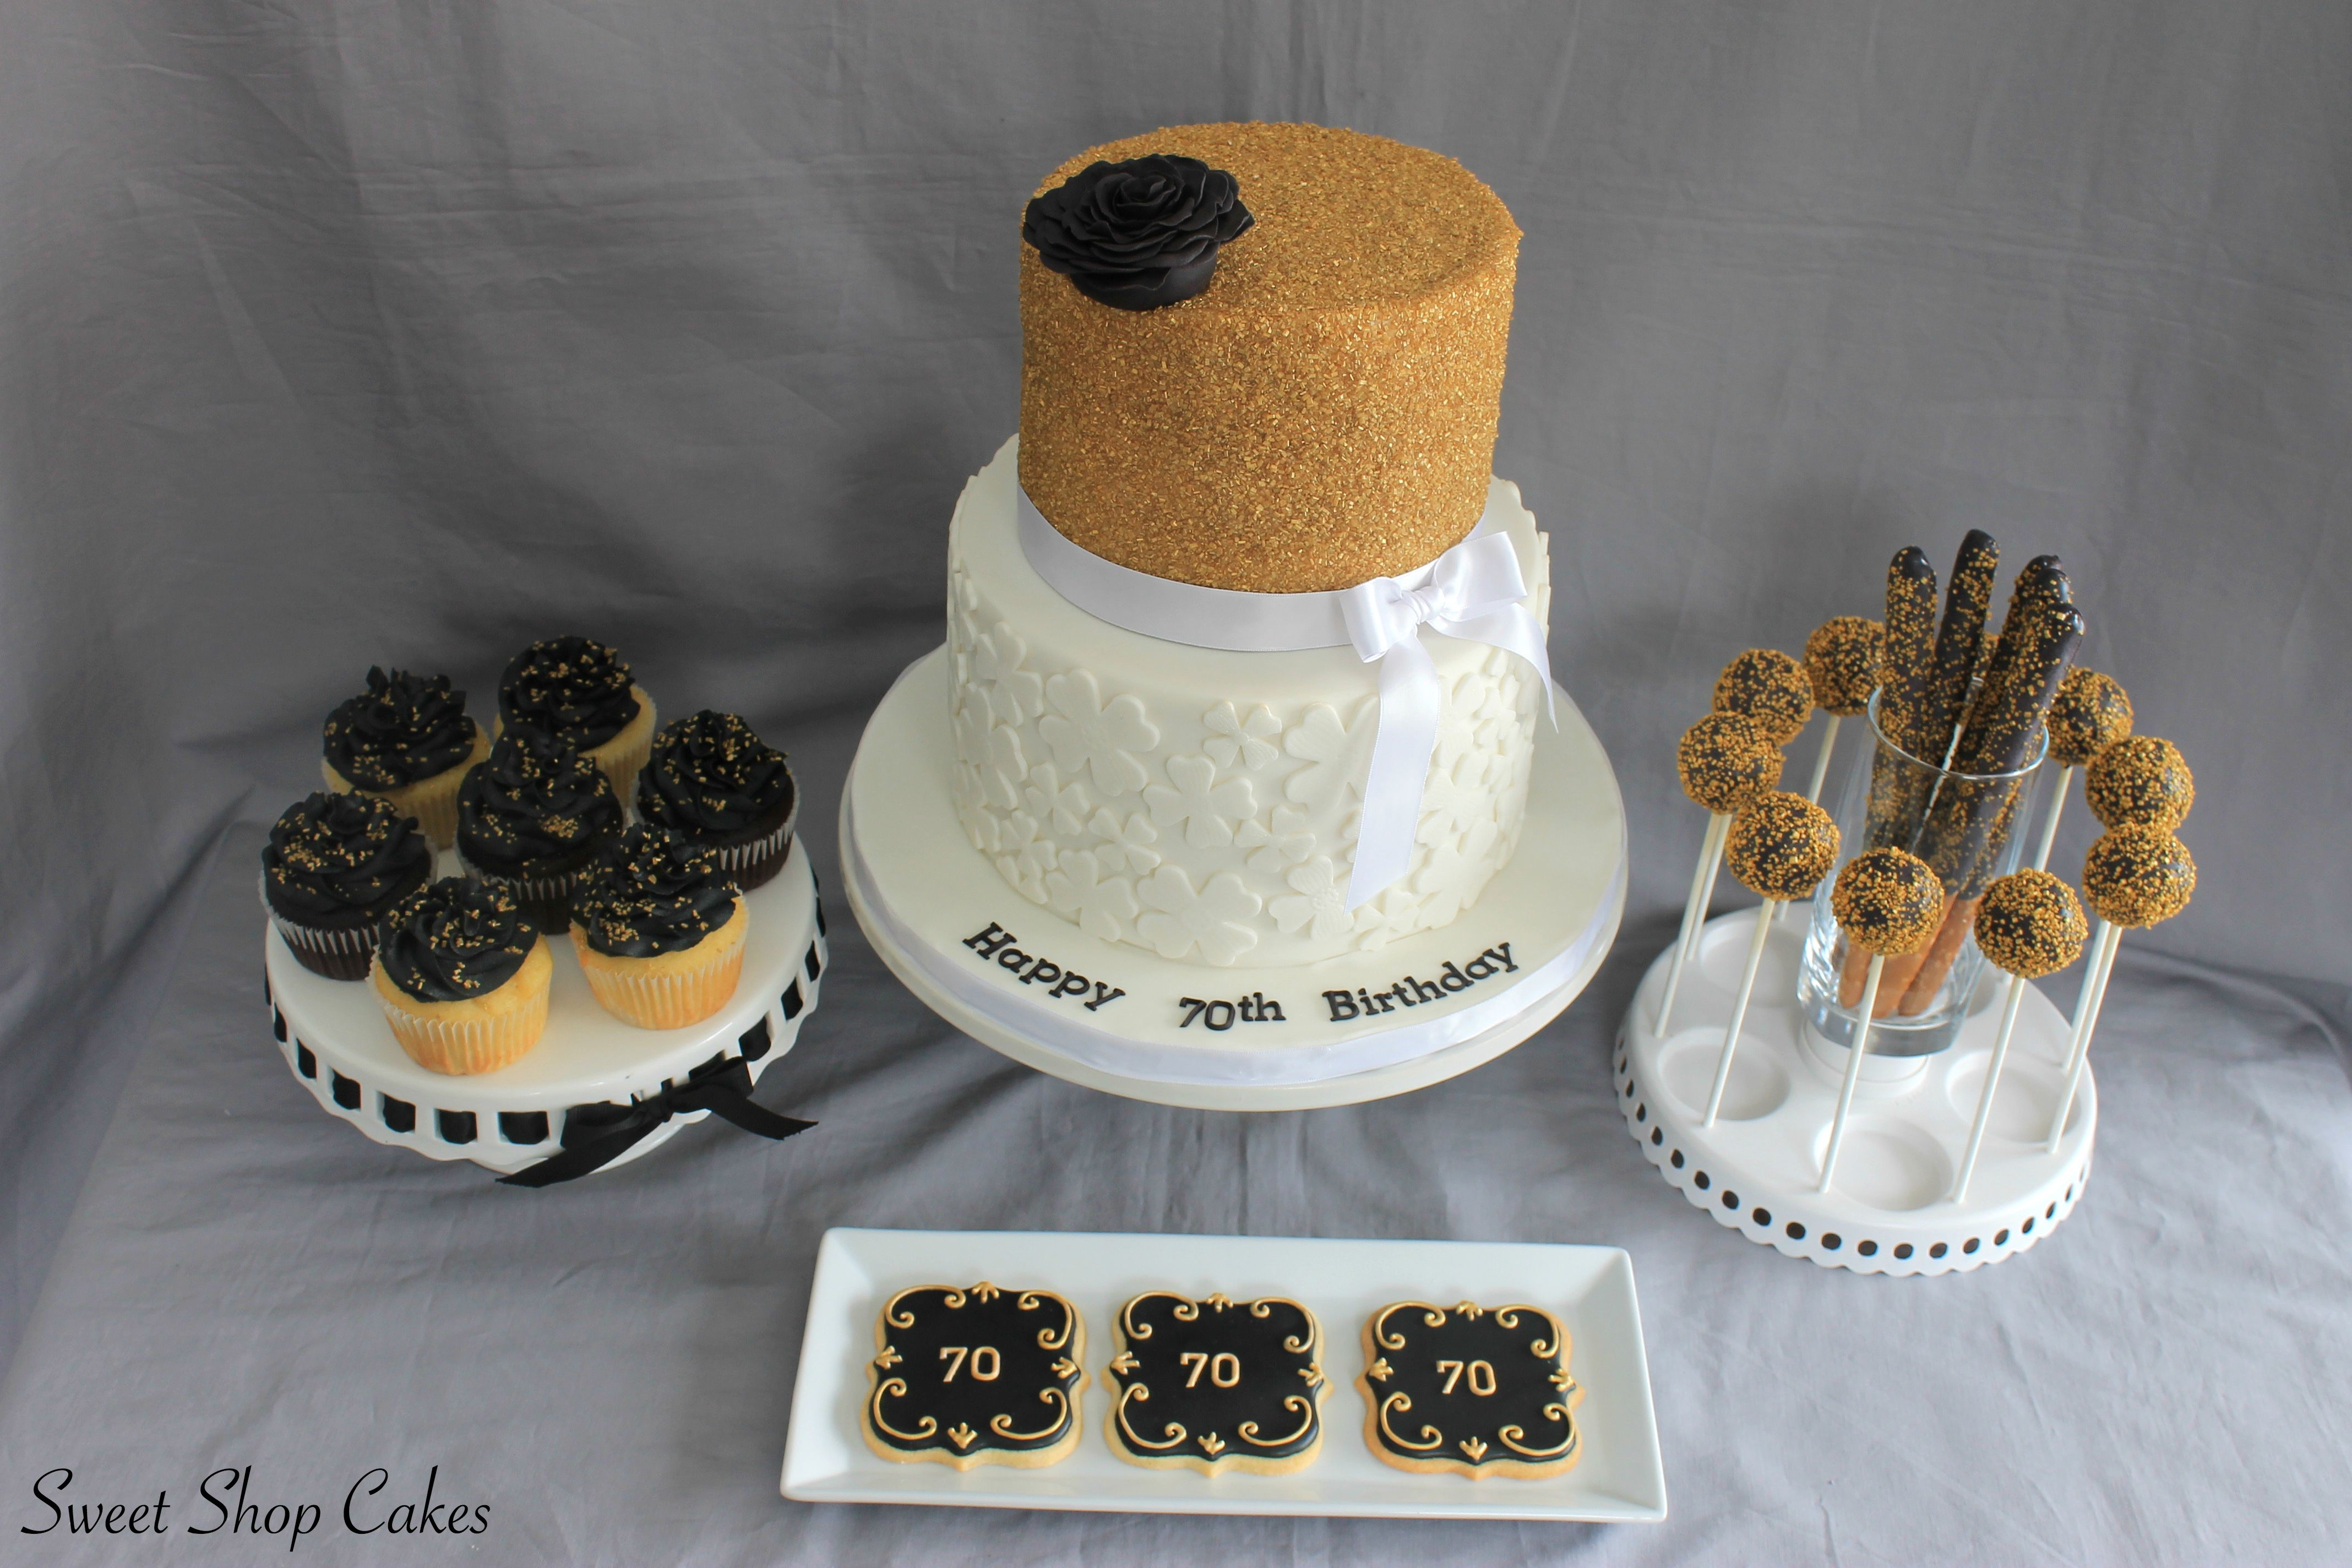 Black & Gold birthday cake with matching sweets